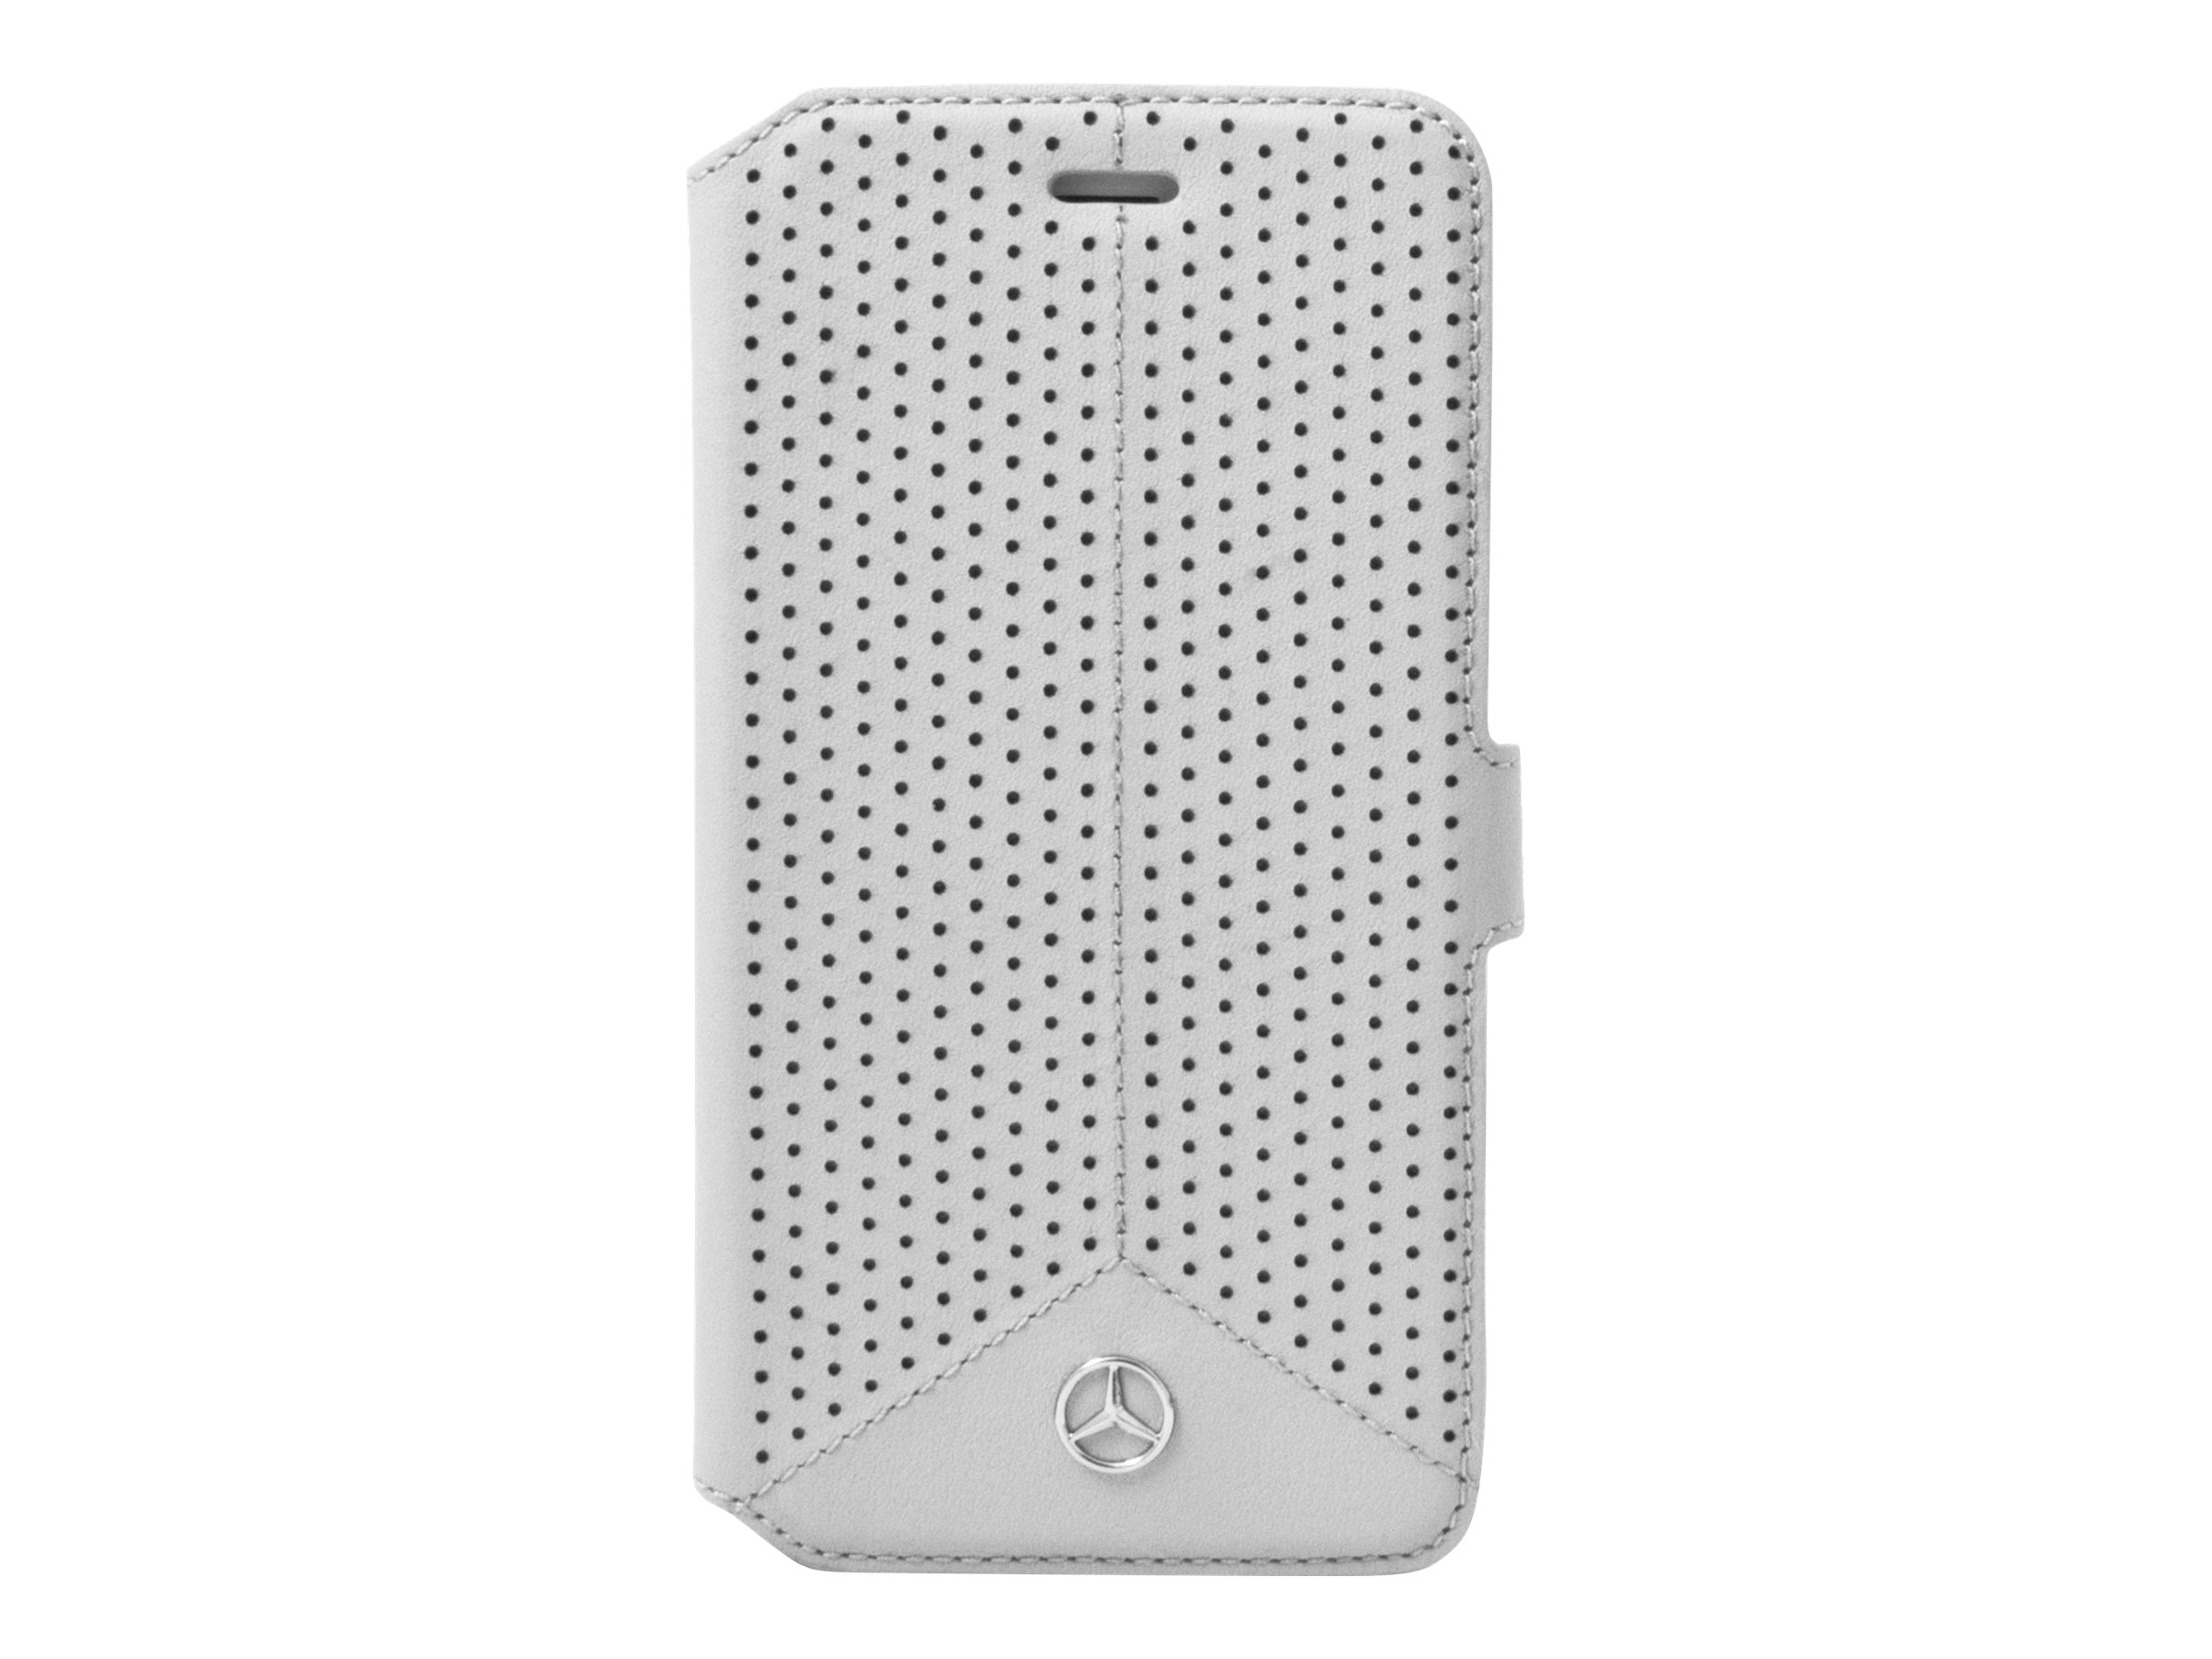 MERCEDES - Protection à rabat pour iPhone 6 Plus, 6s Plus - cuir véritable - gris